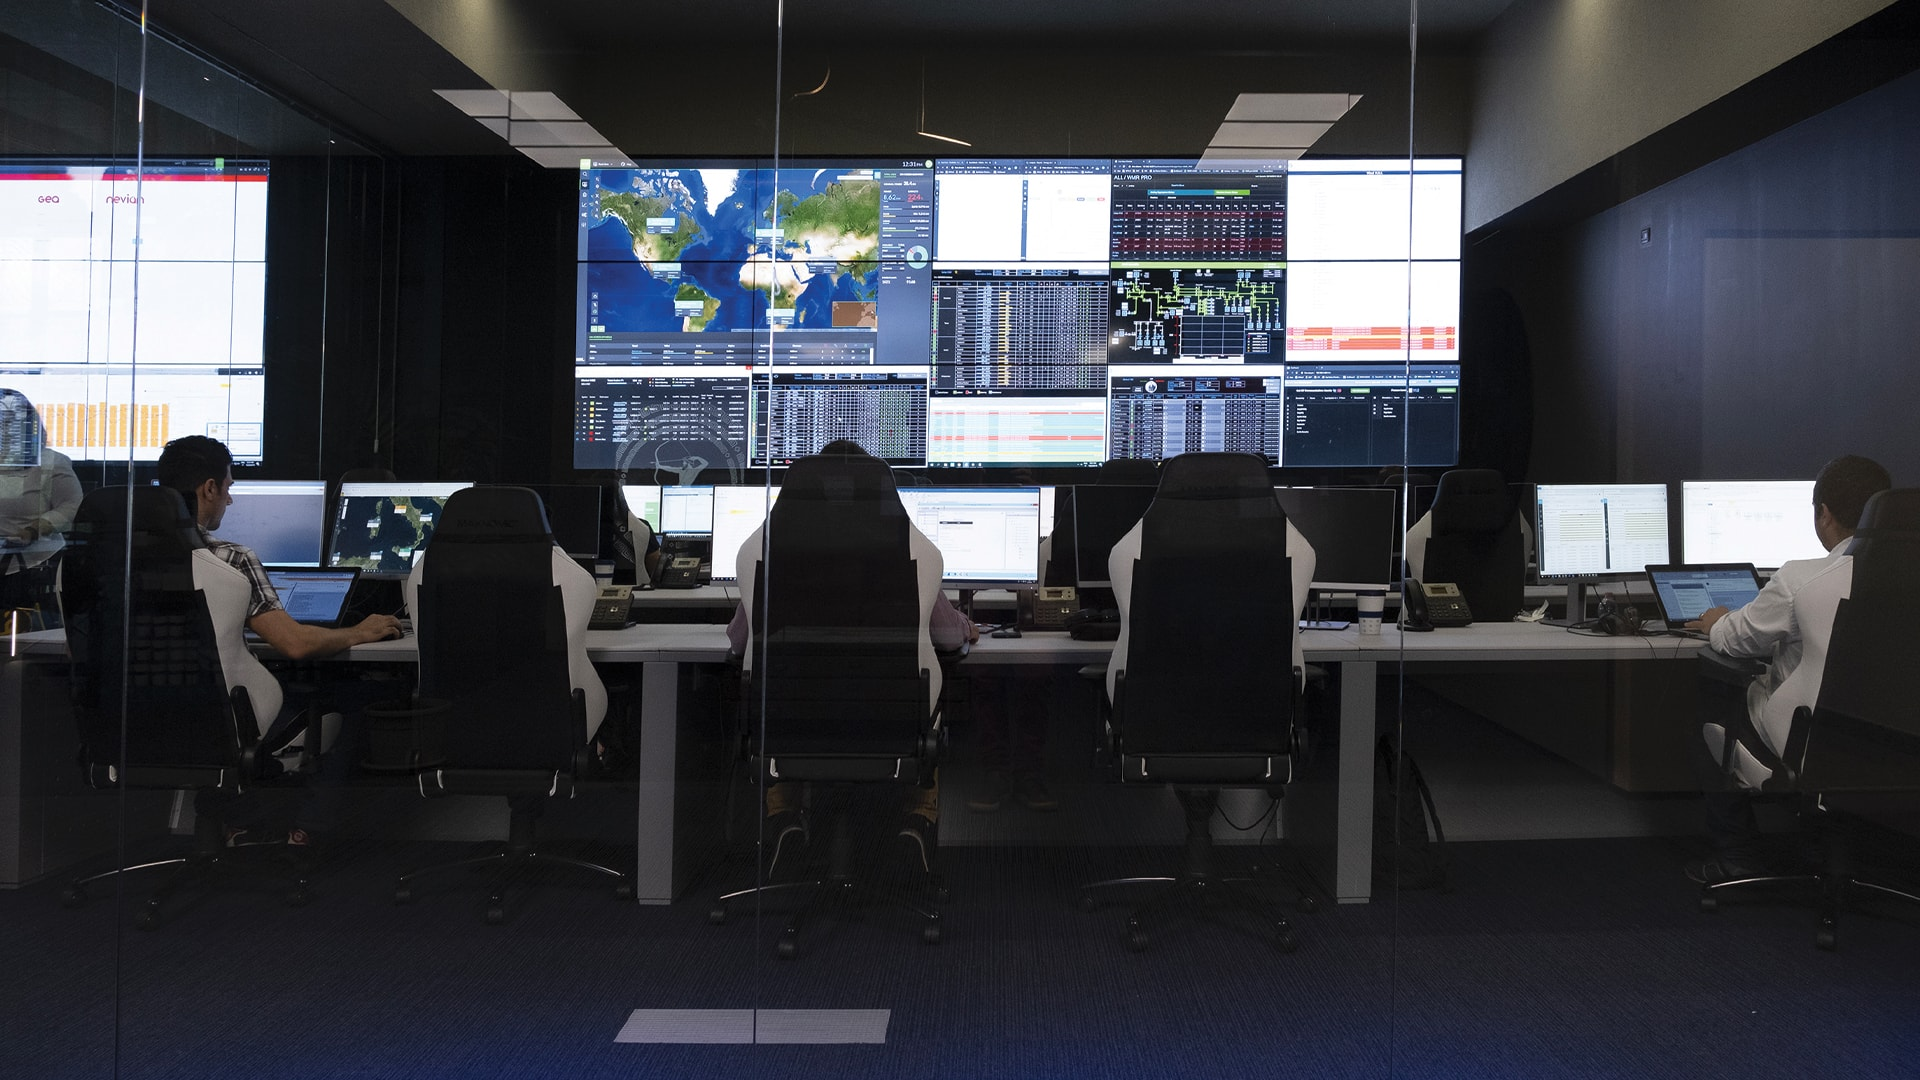 BaxEnergy Monitoring & Control Room full